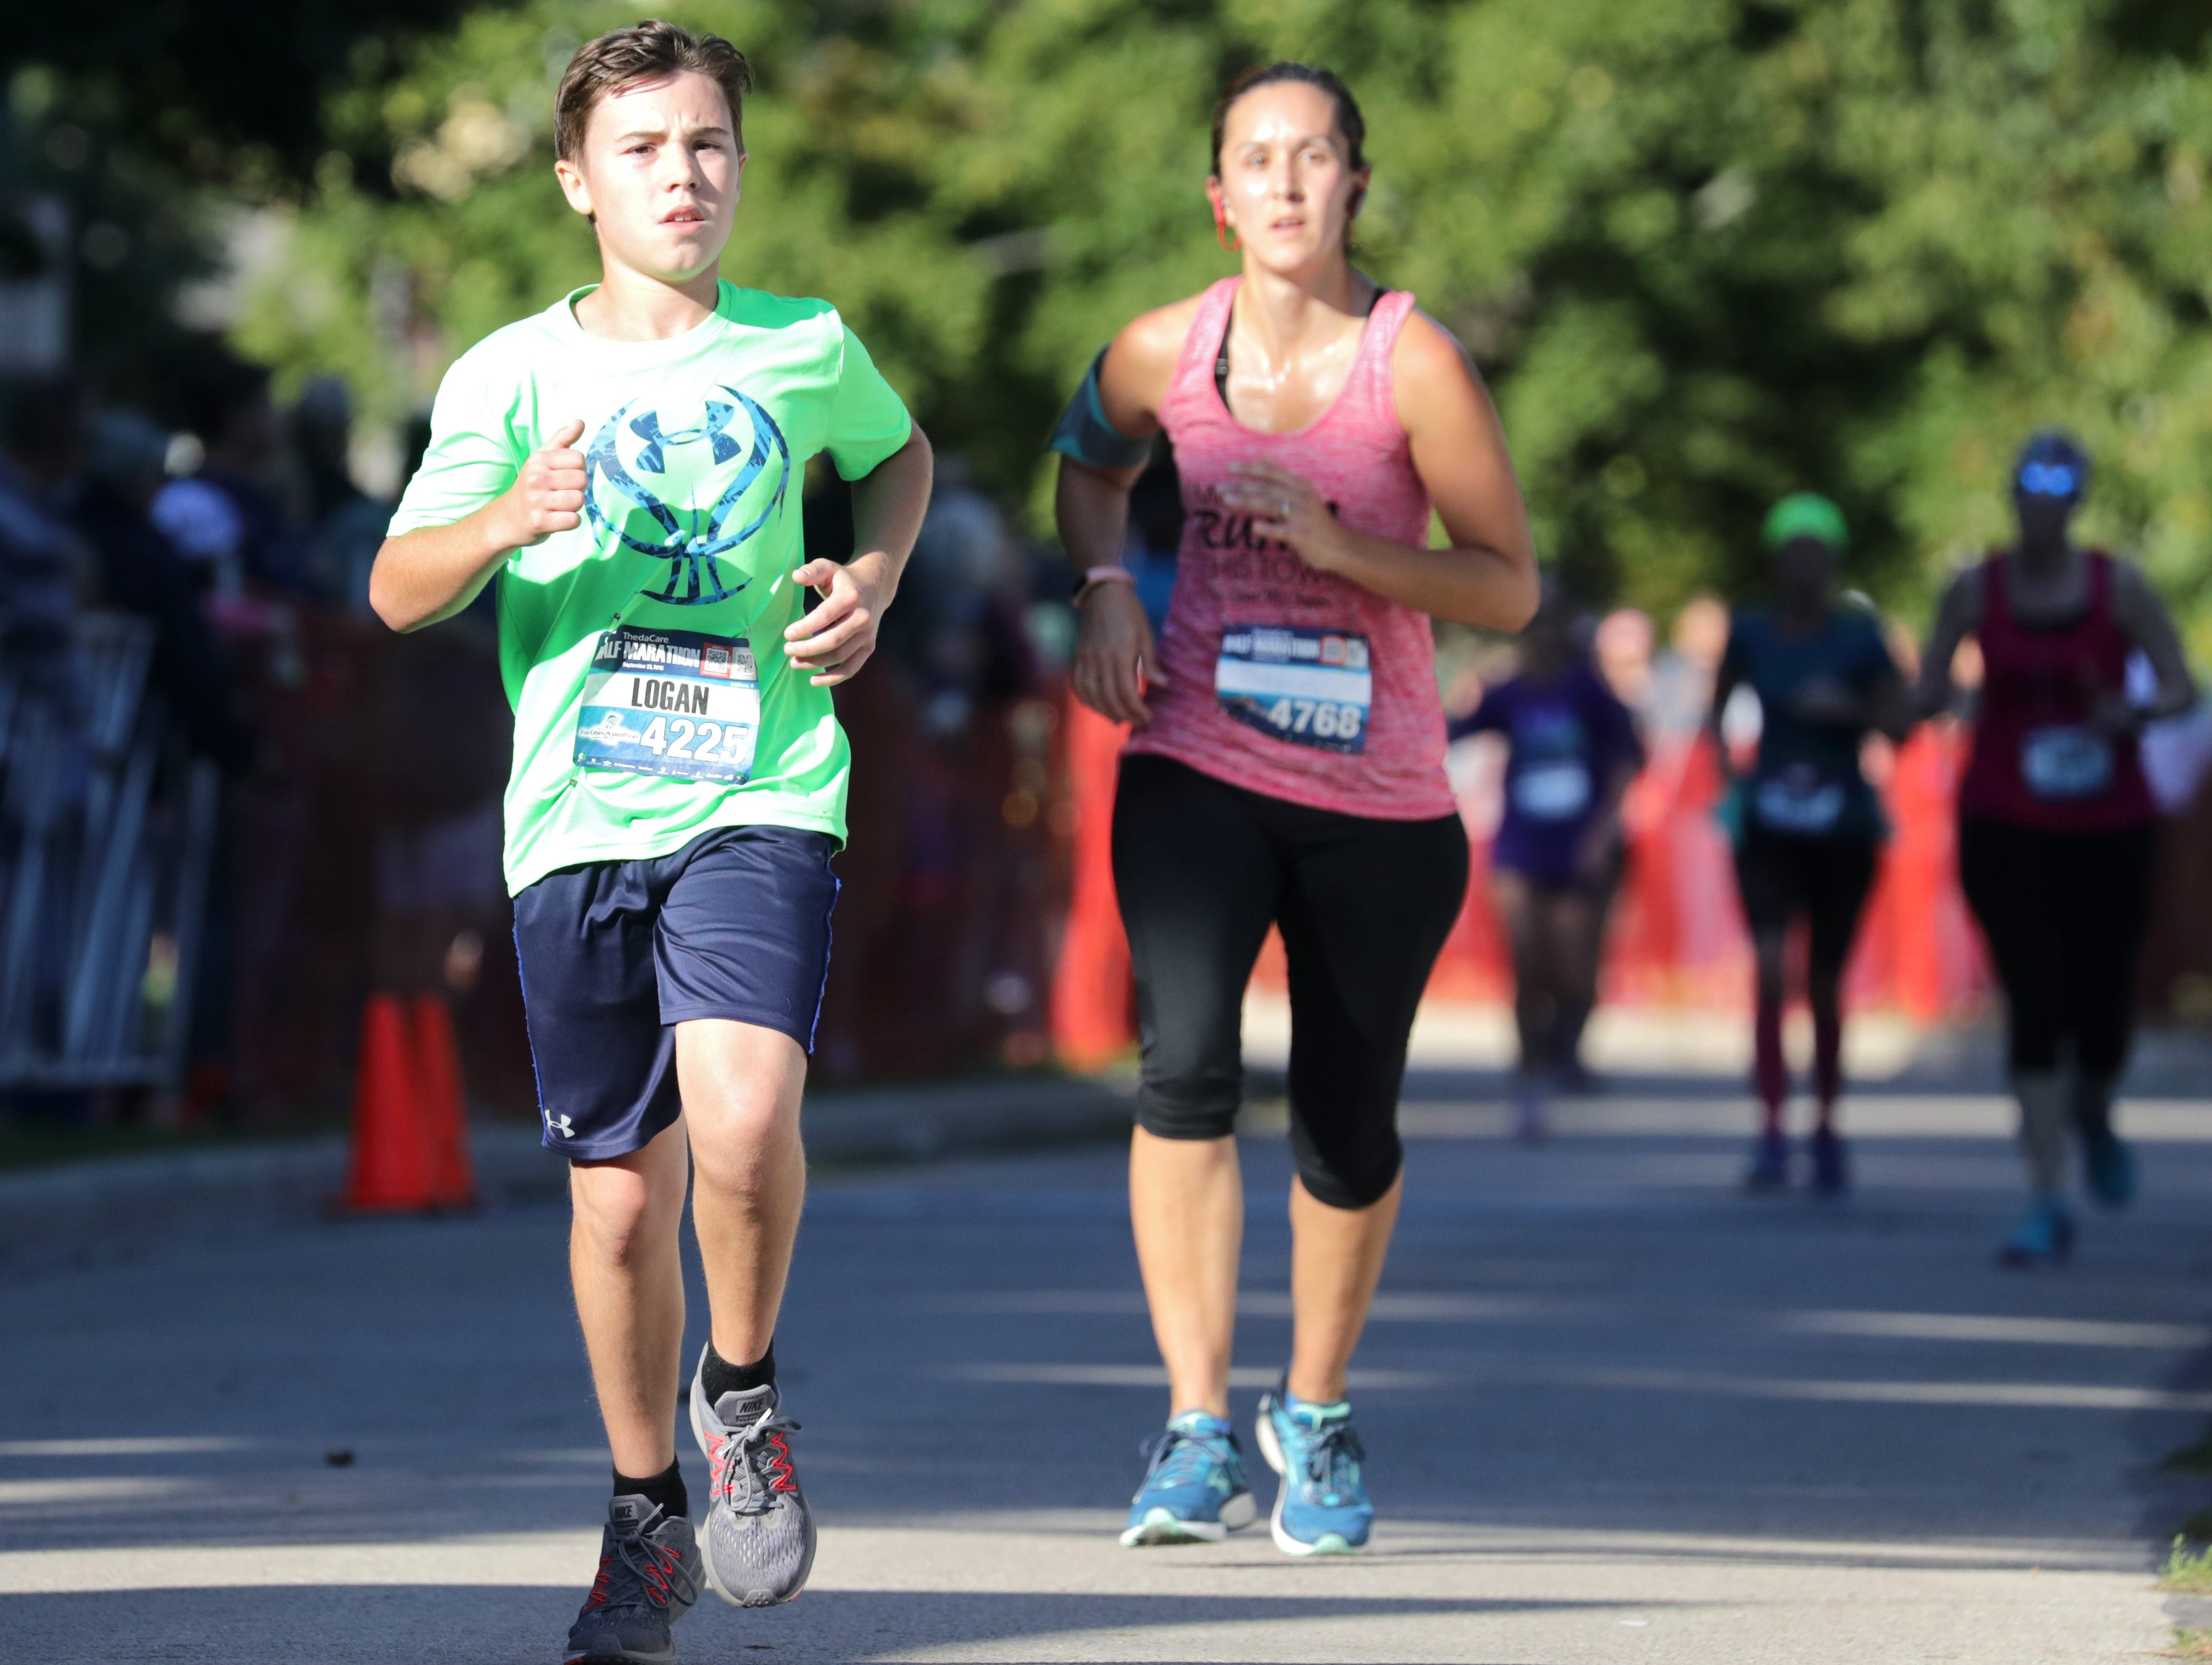 Logan Schmitz crosses the finish line in the half marathon event during the 28th annual Community First Fox Cities Marathon on Sunday, September 23, 2018, in Neenah Wis. Wm. Glasheen/USA TODAY NETWORK-Wisconsin.